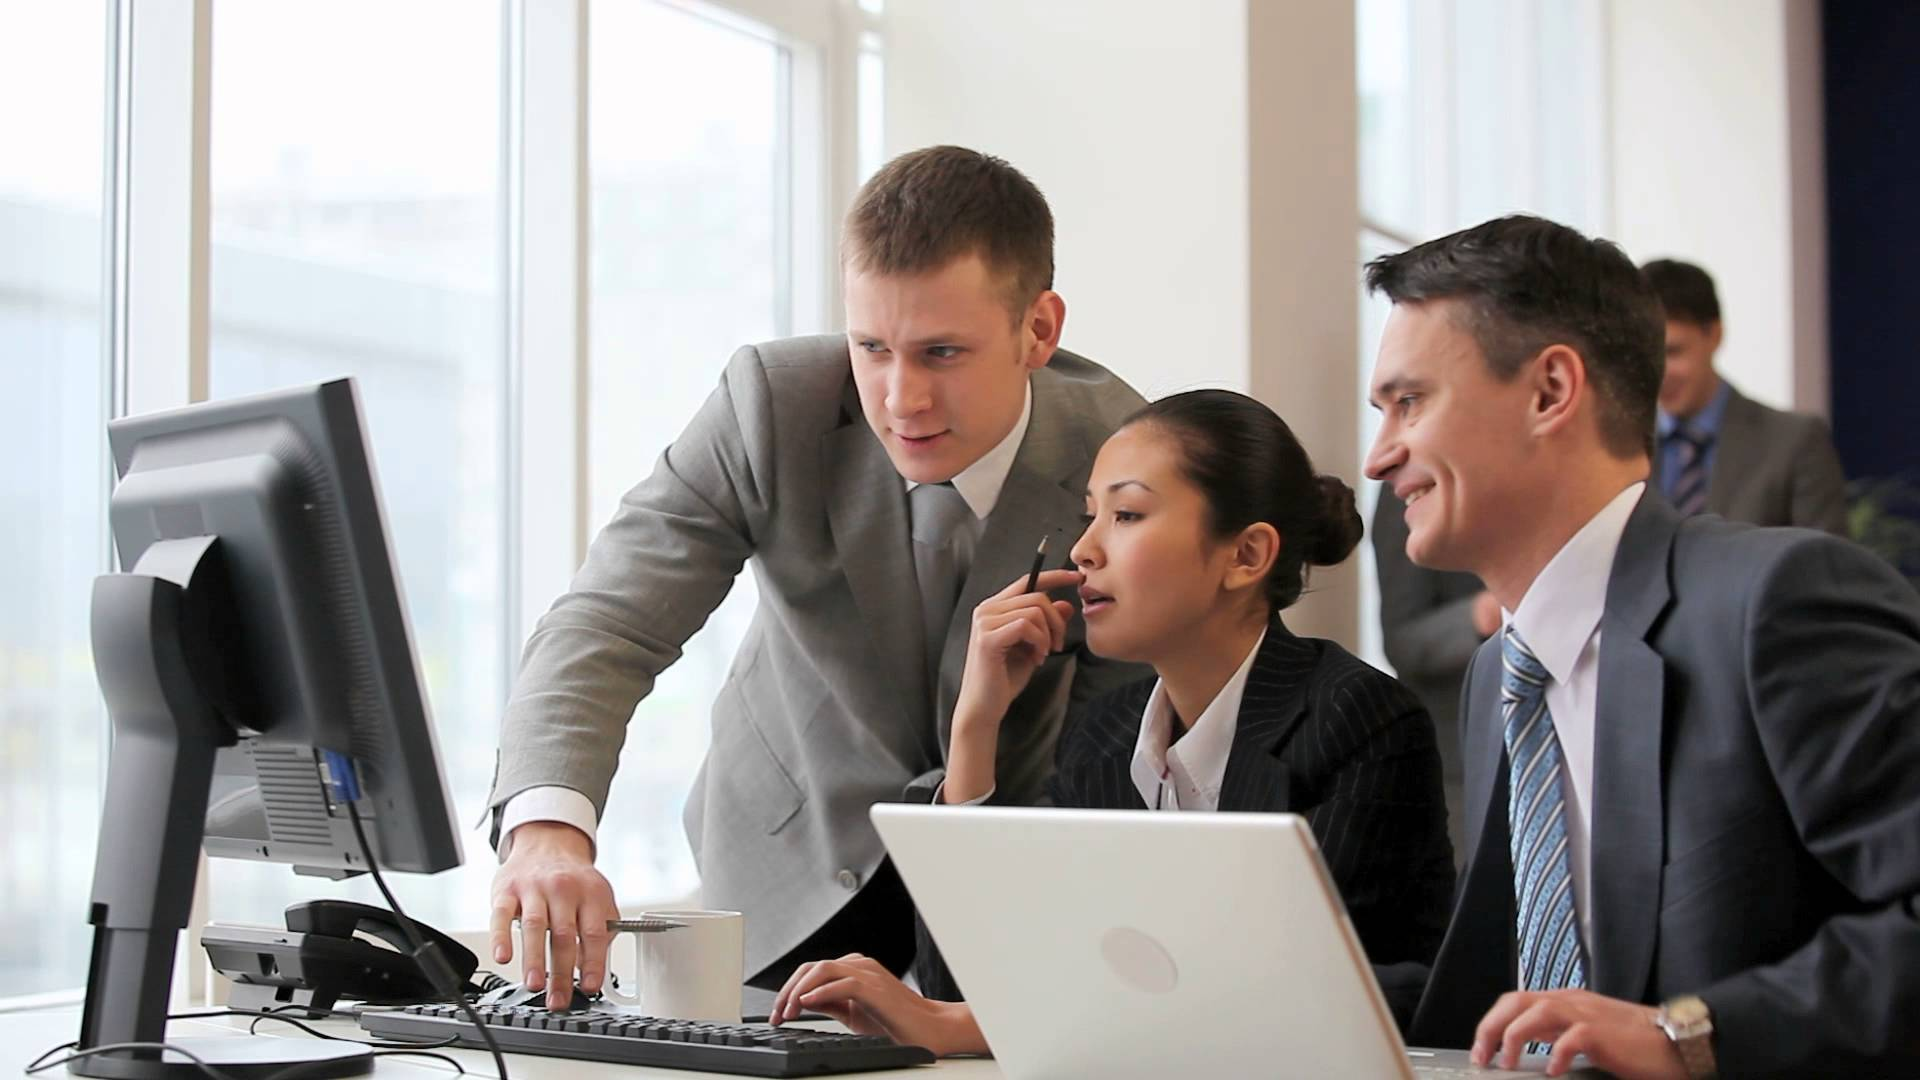 Business People Photos Full Hd Pictures